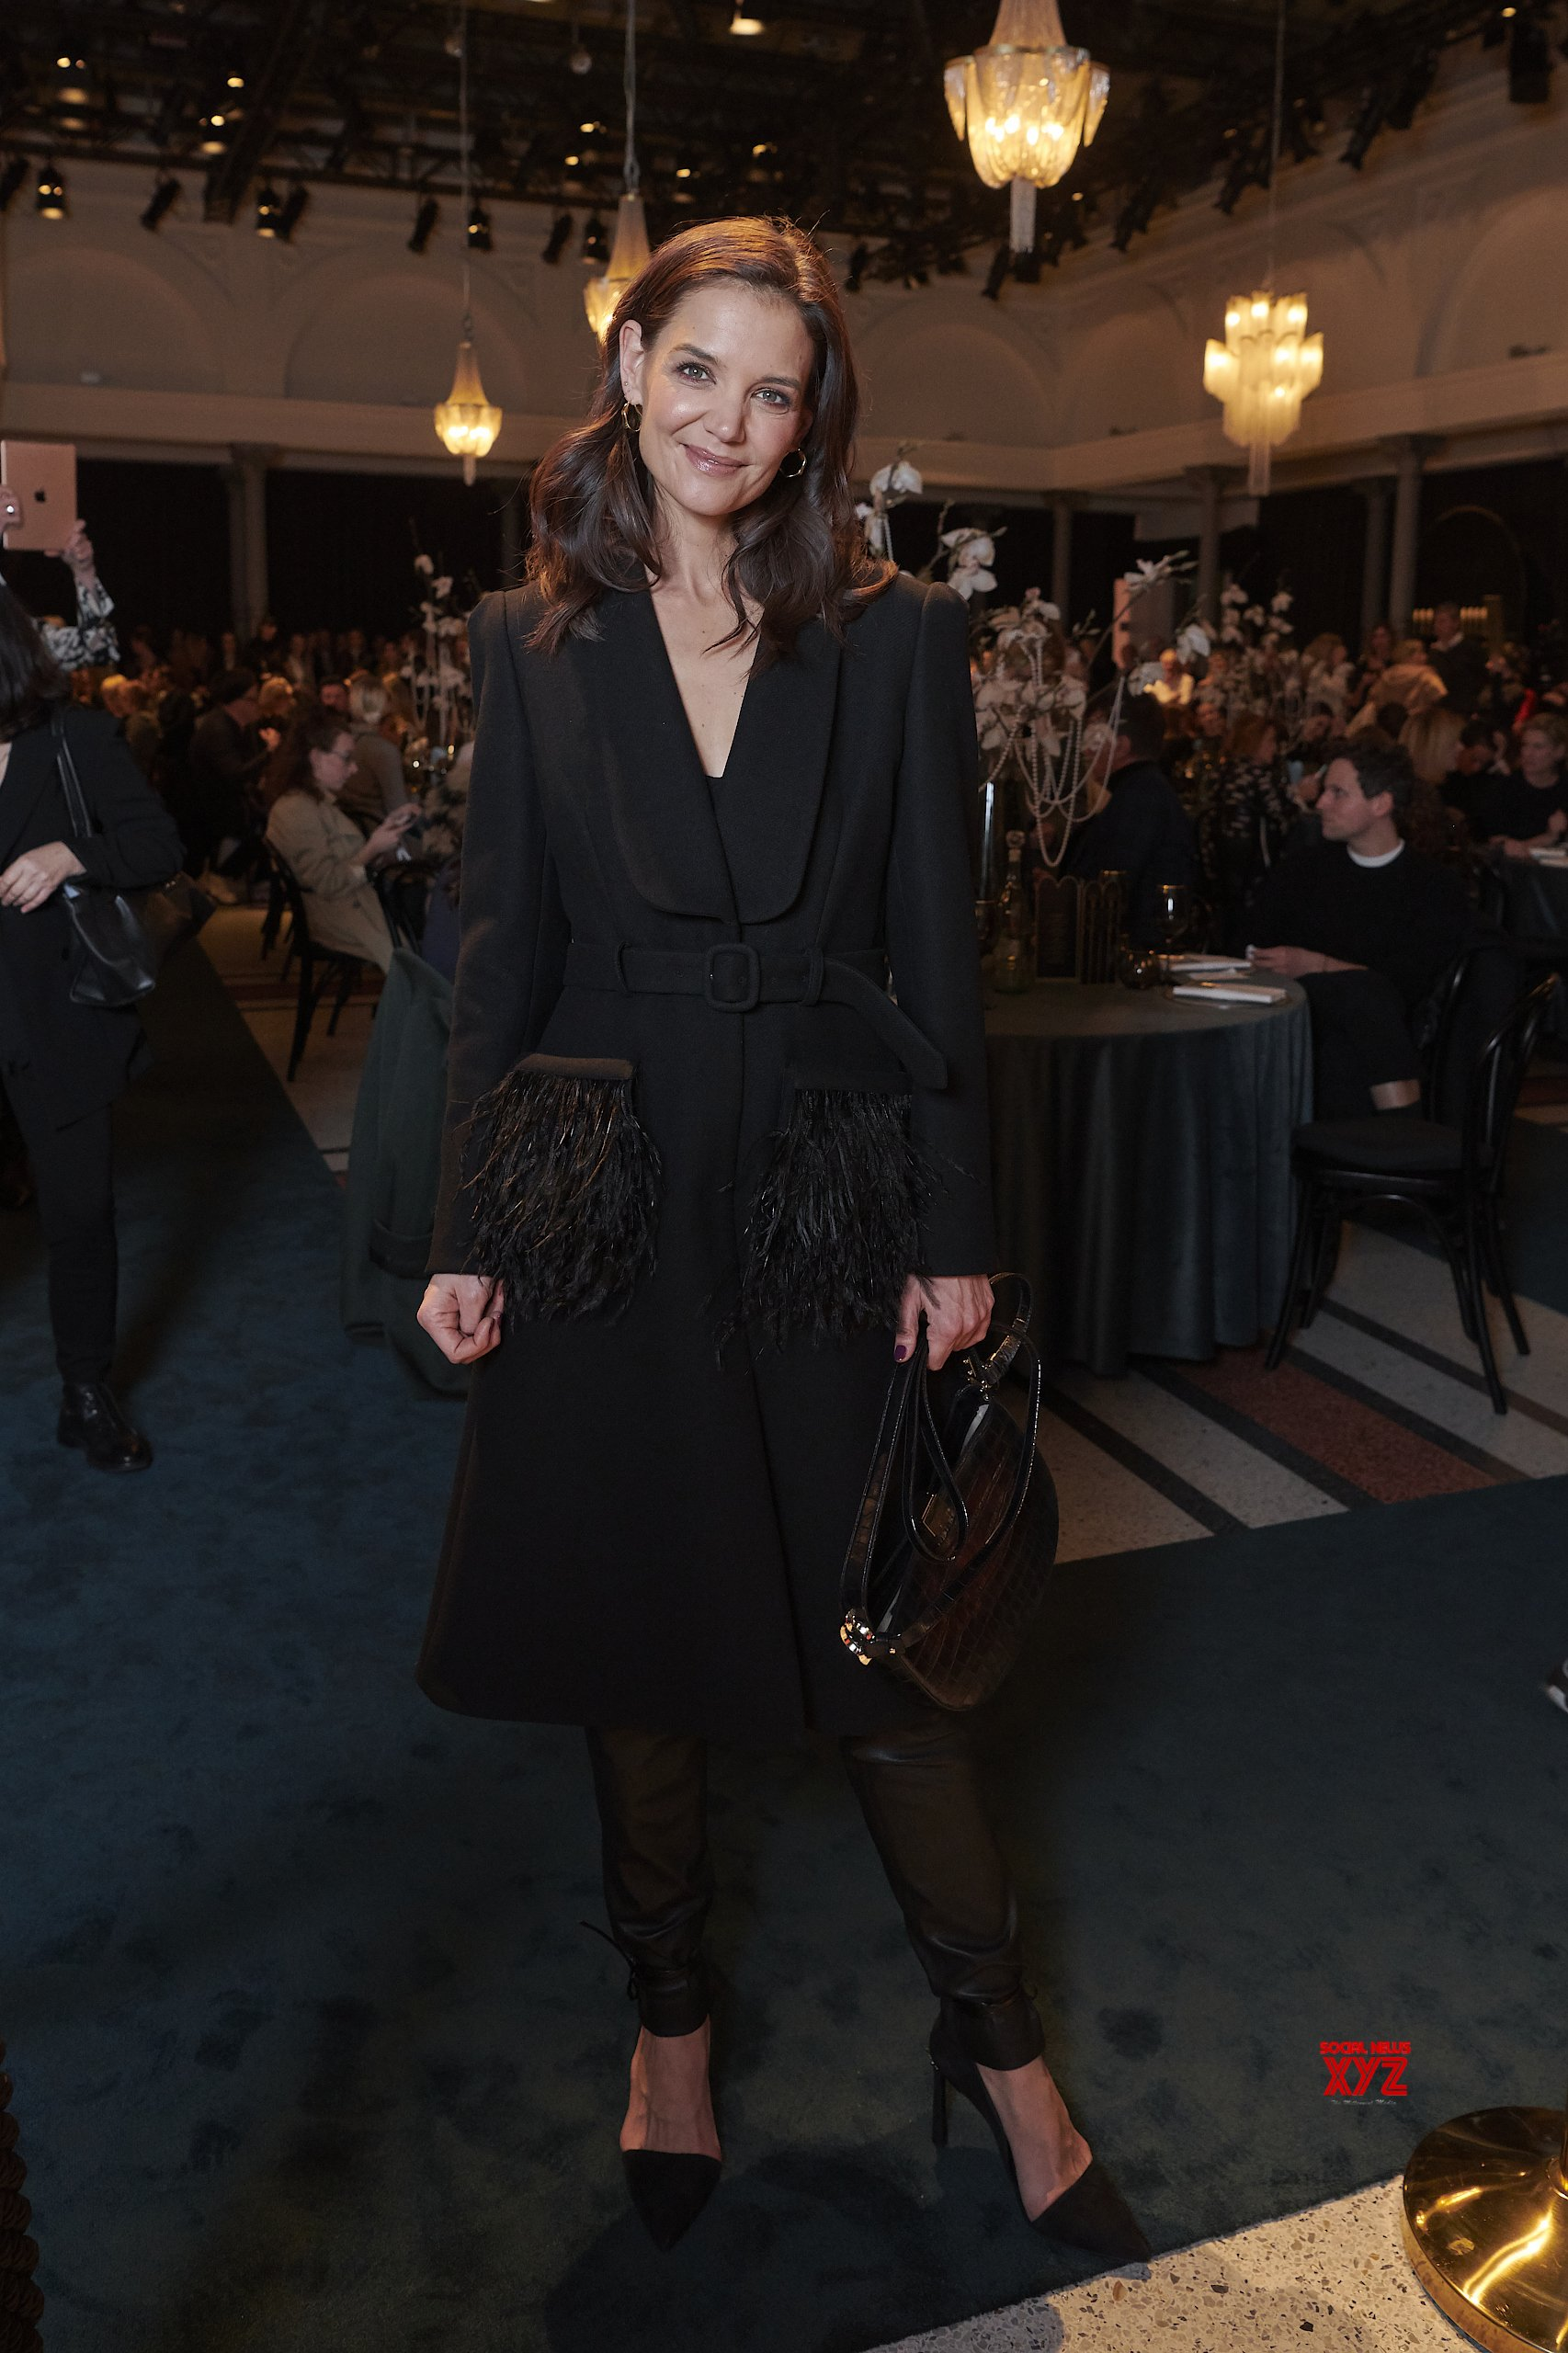 Katie Holmes And Other Celebs At Marc Cain Fashion Show In Berlin Fashion Week Autumn Winter 2020 Gallery Social News Xyz